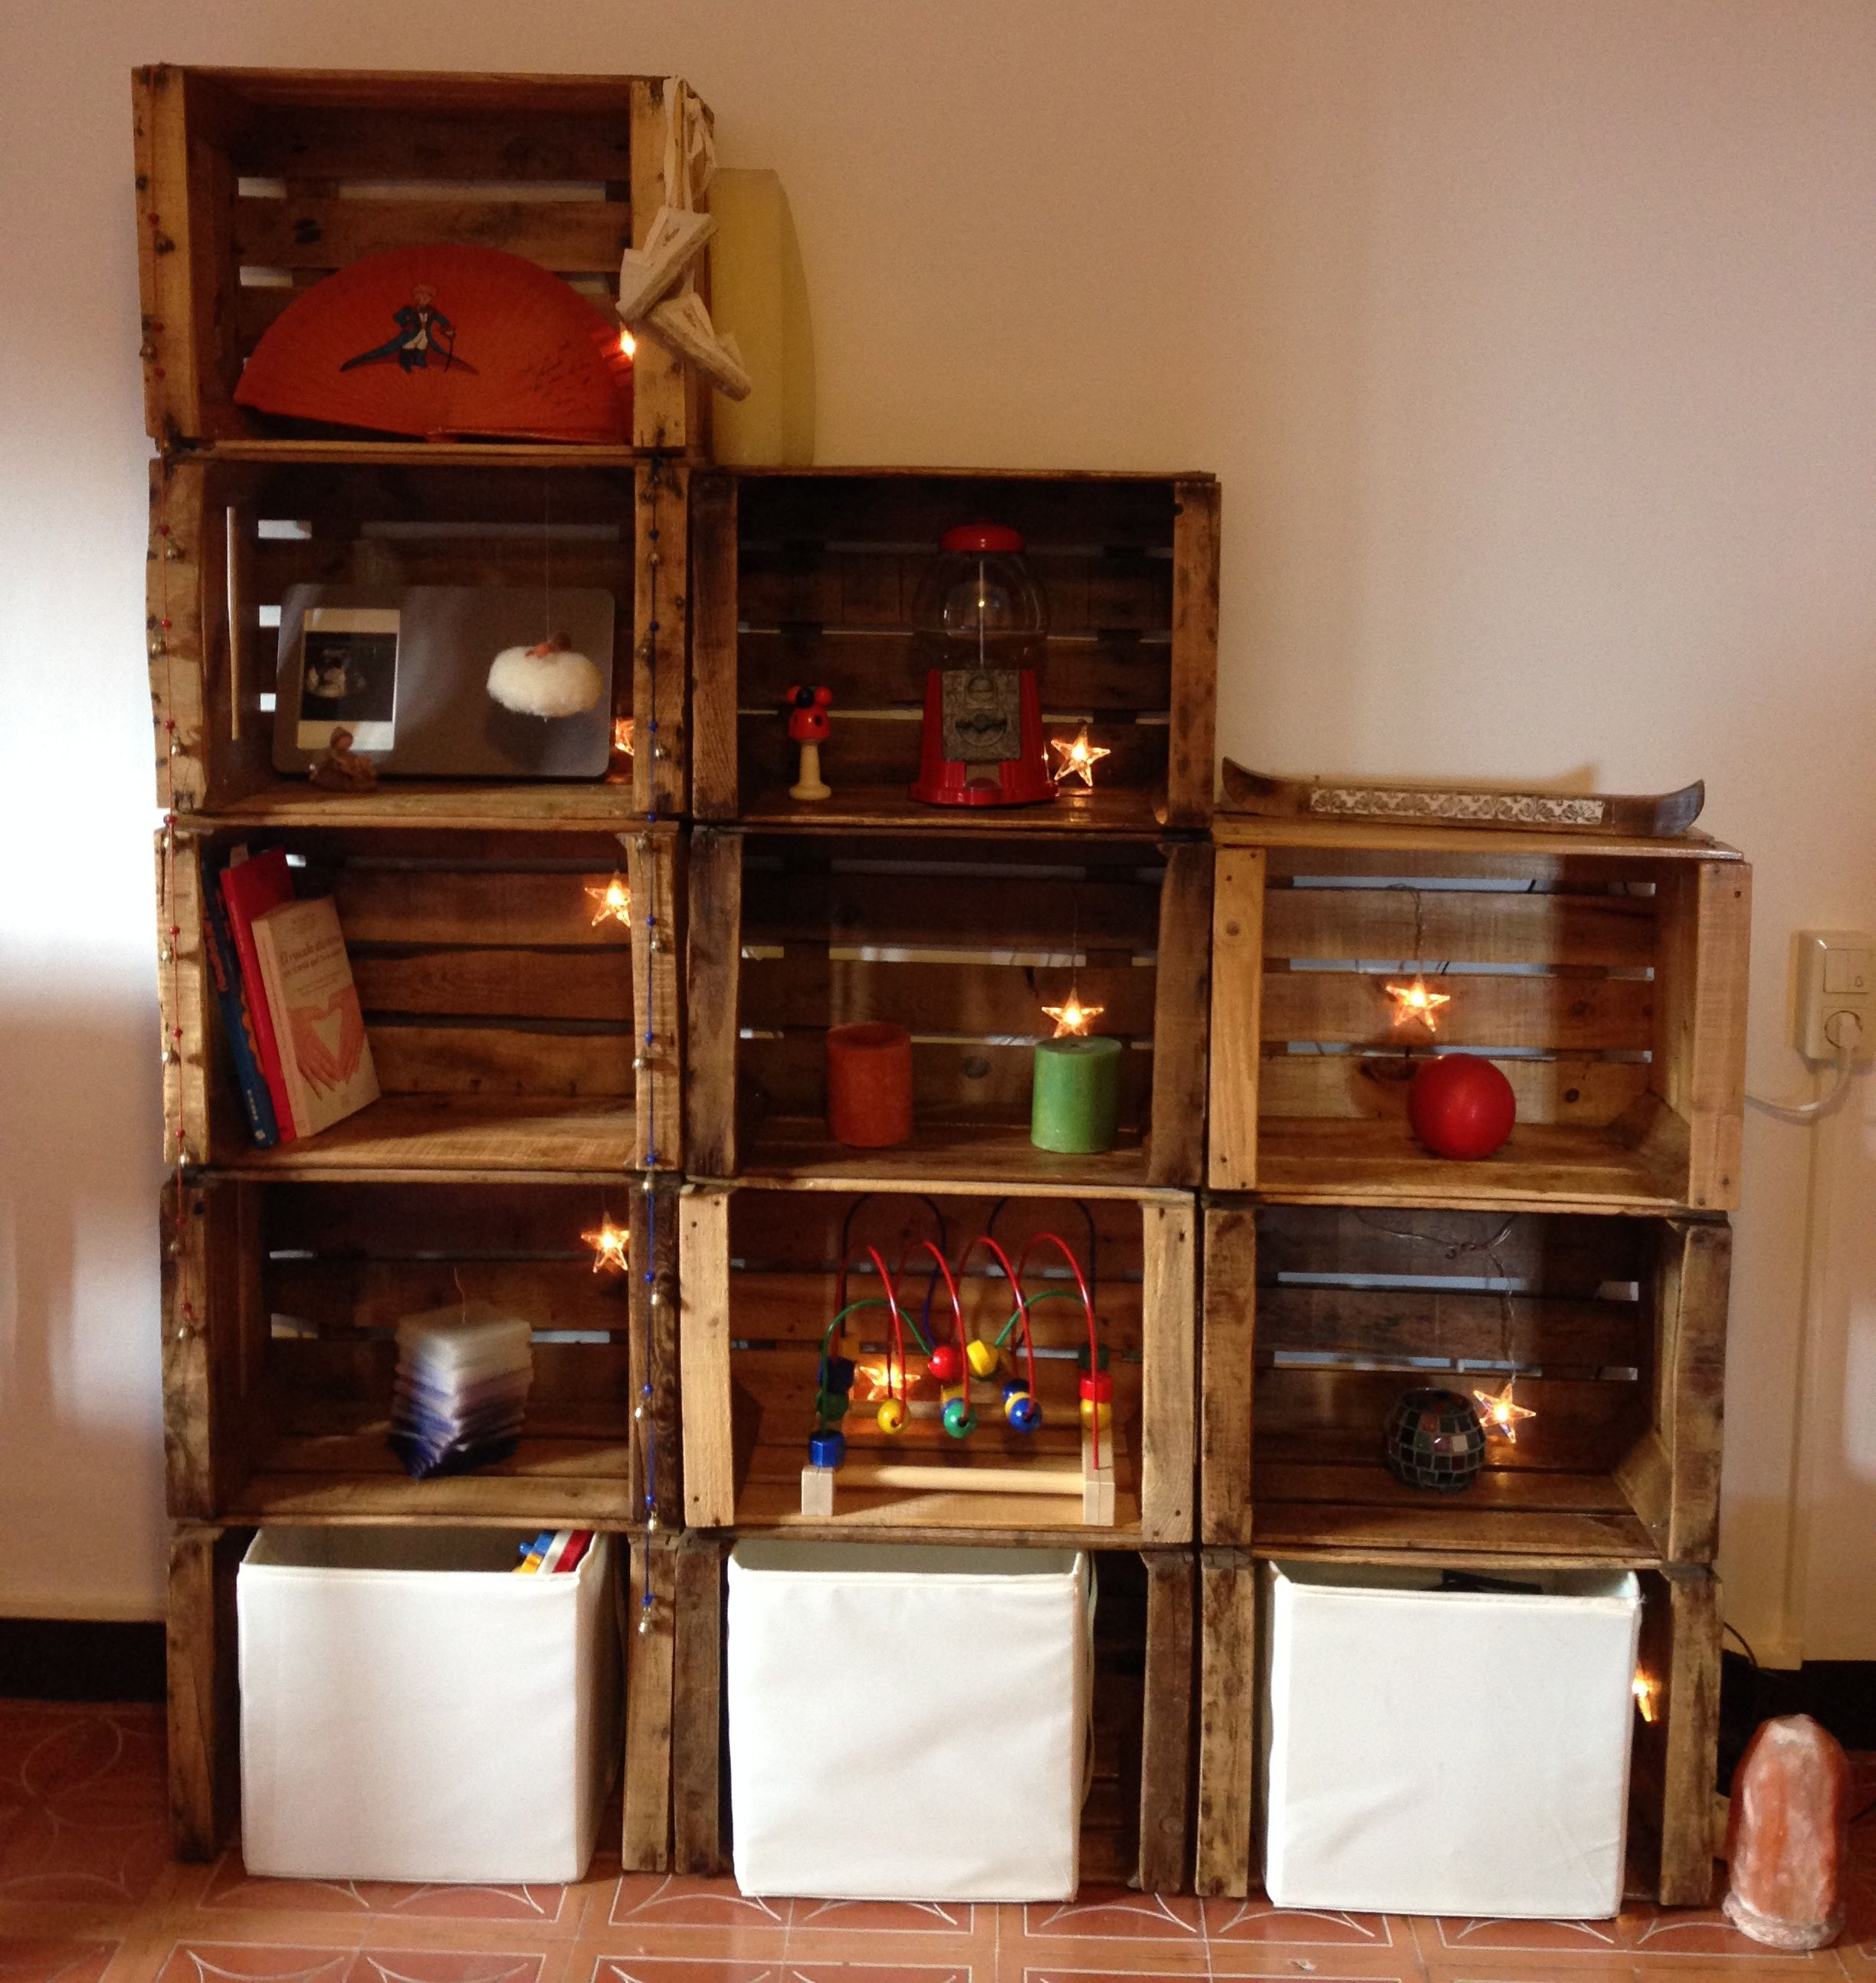 Diy Muebles Diy Bookshelves With Fruit Boxes Estanteria Cajas De Fruta